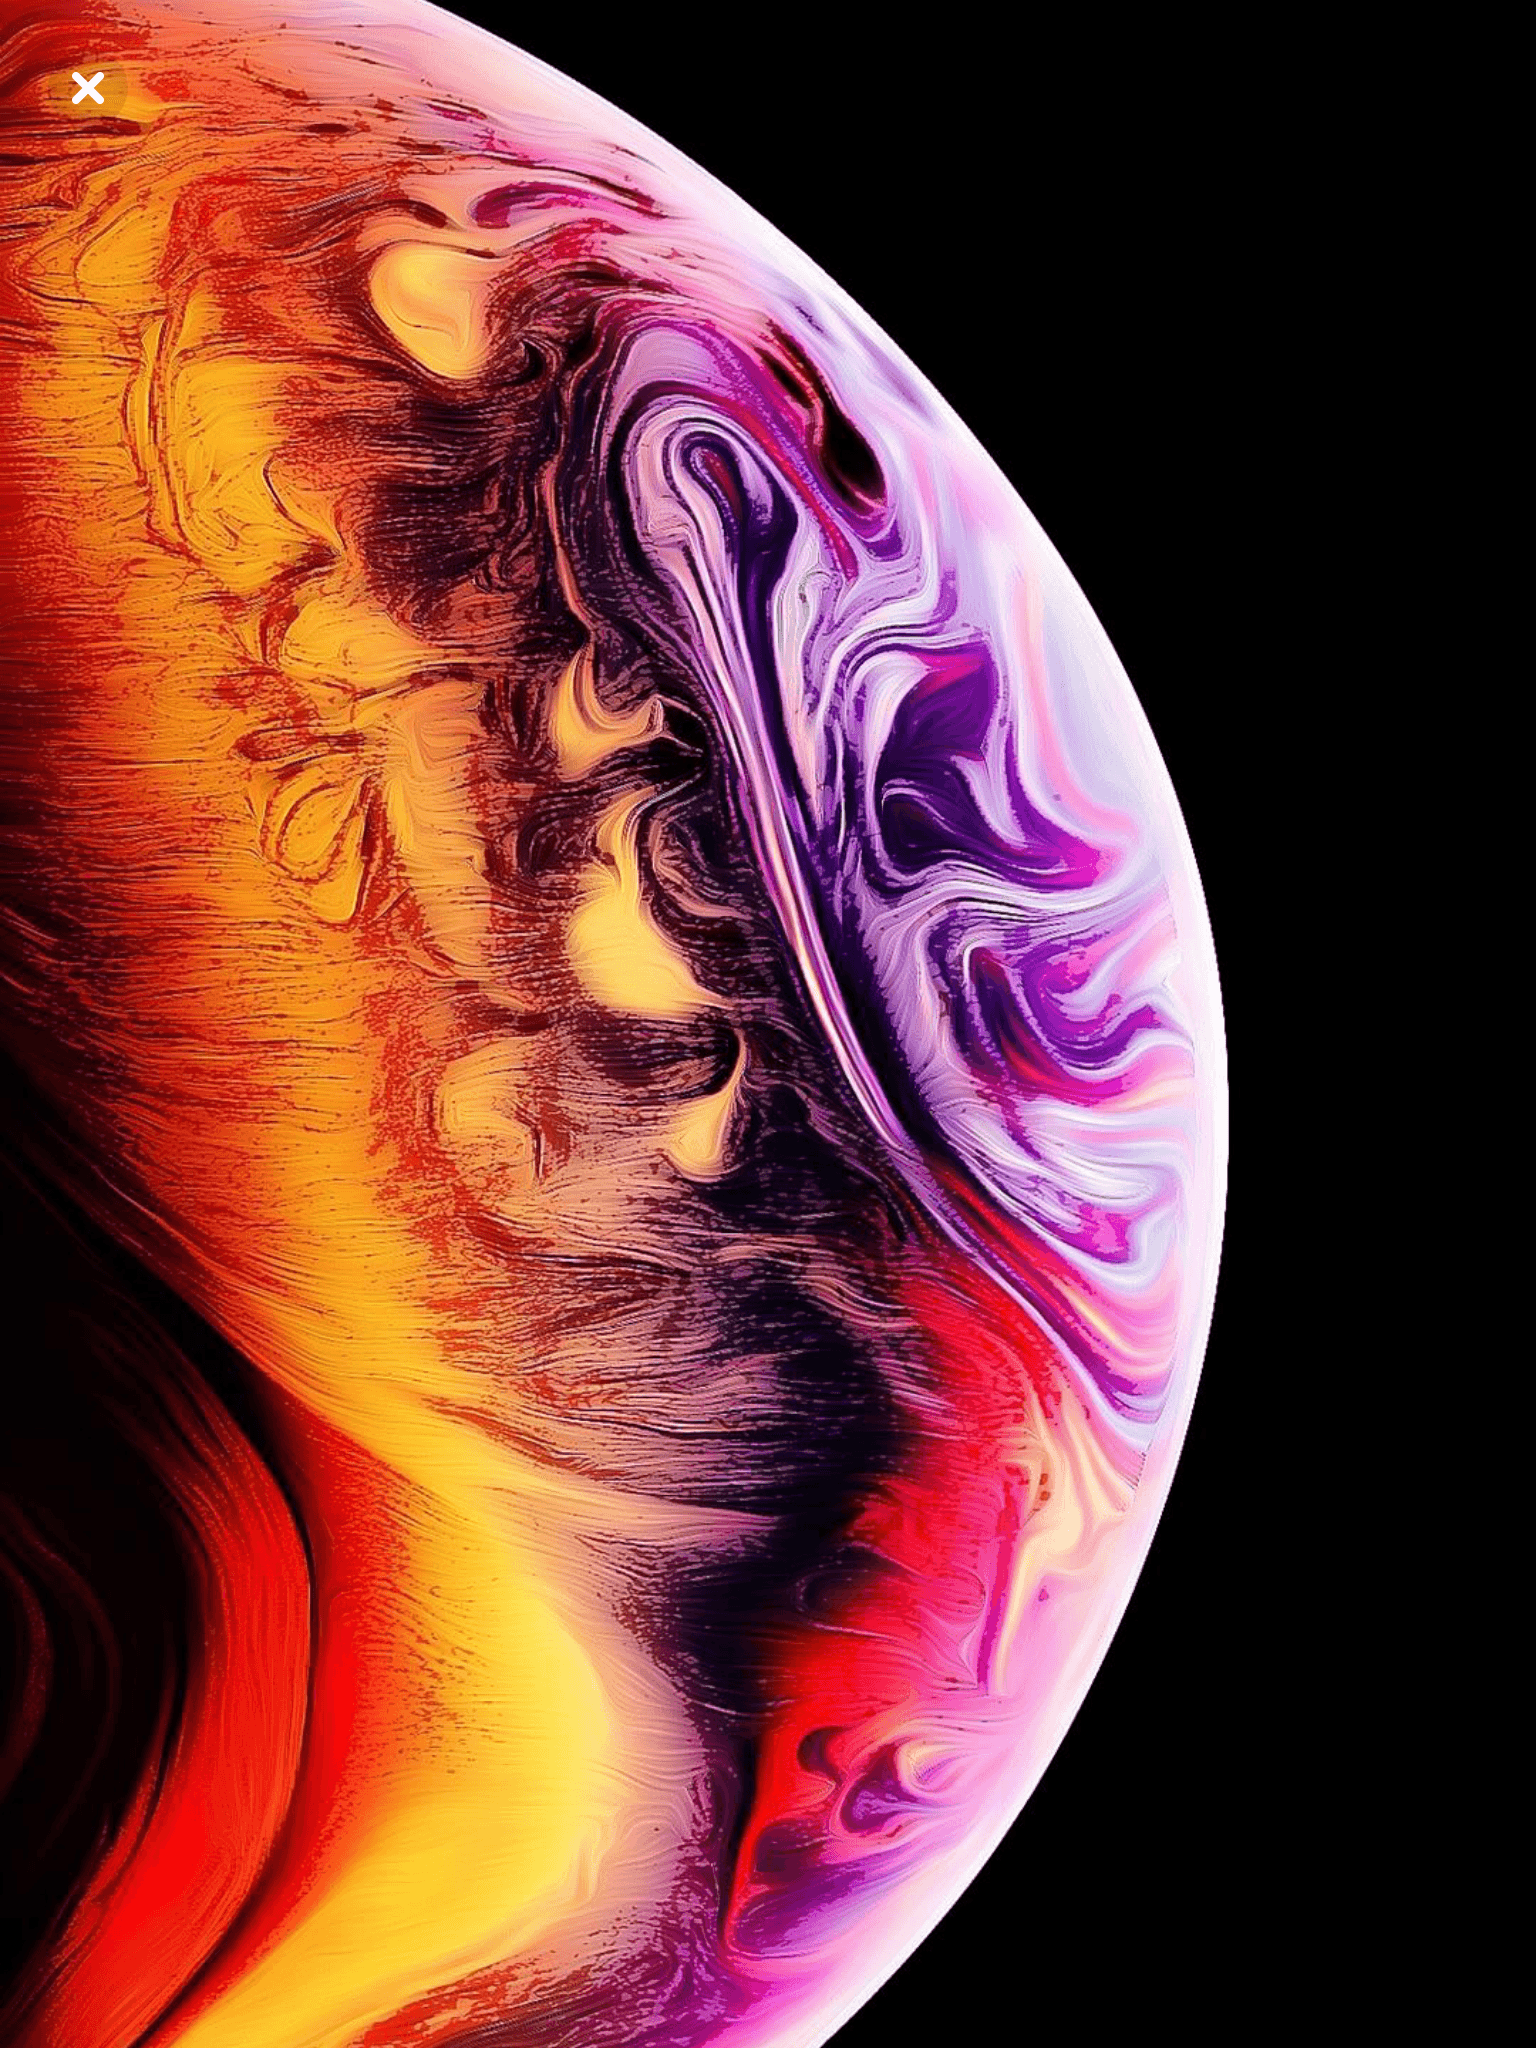 4k Iphone 11 Pro Max Wallpapers Wallpaper Cave